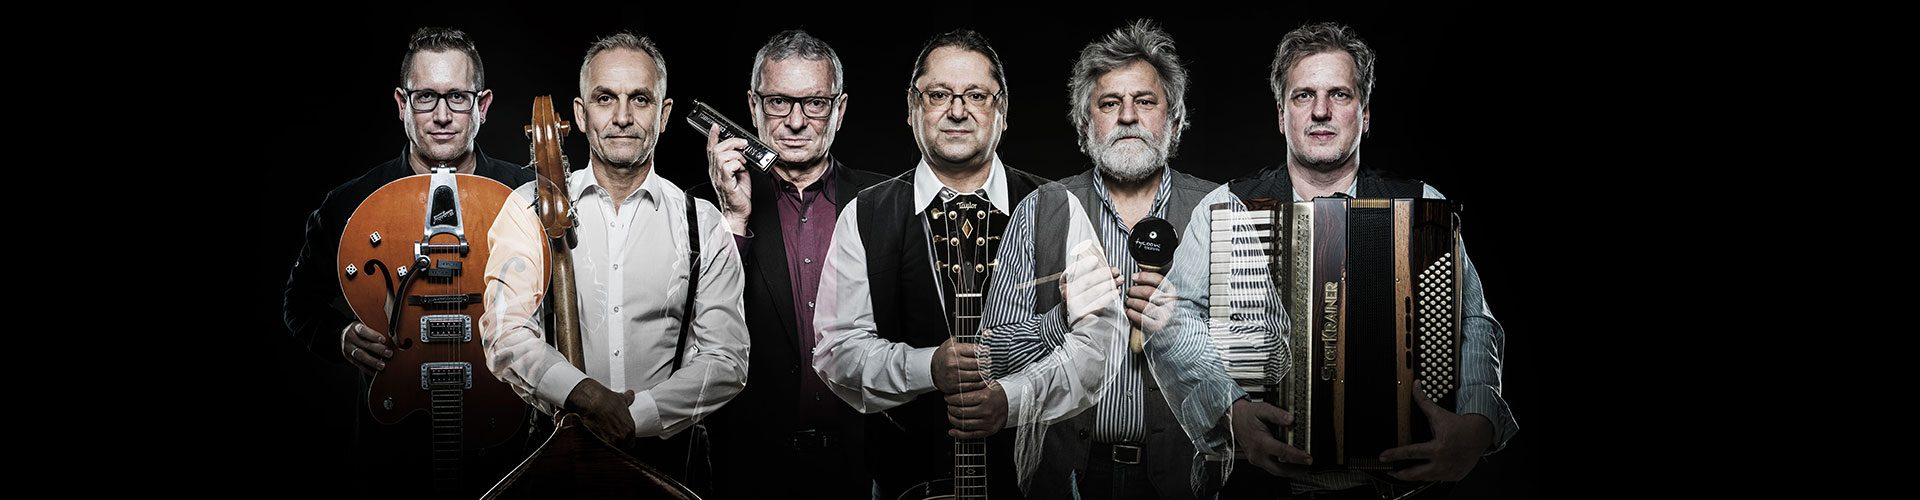 Band Hase & Co mit Sepp Haselsteiner